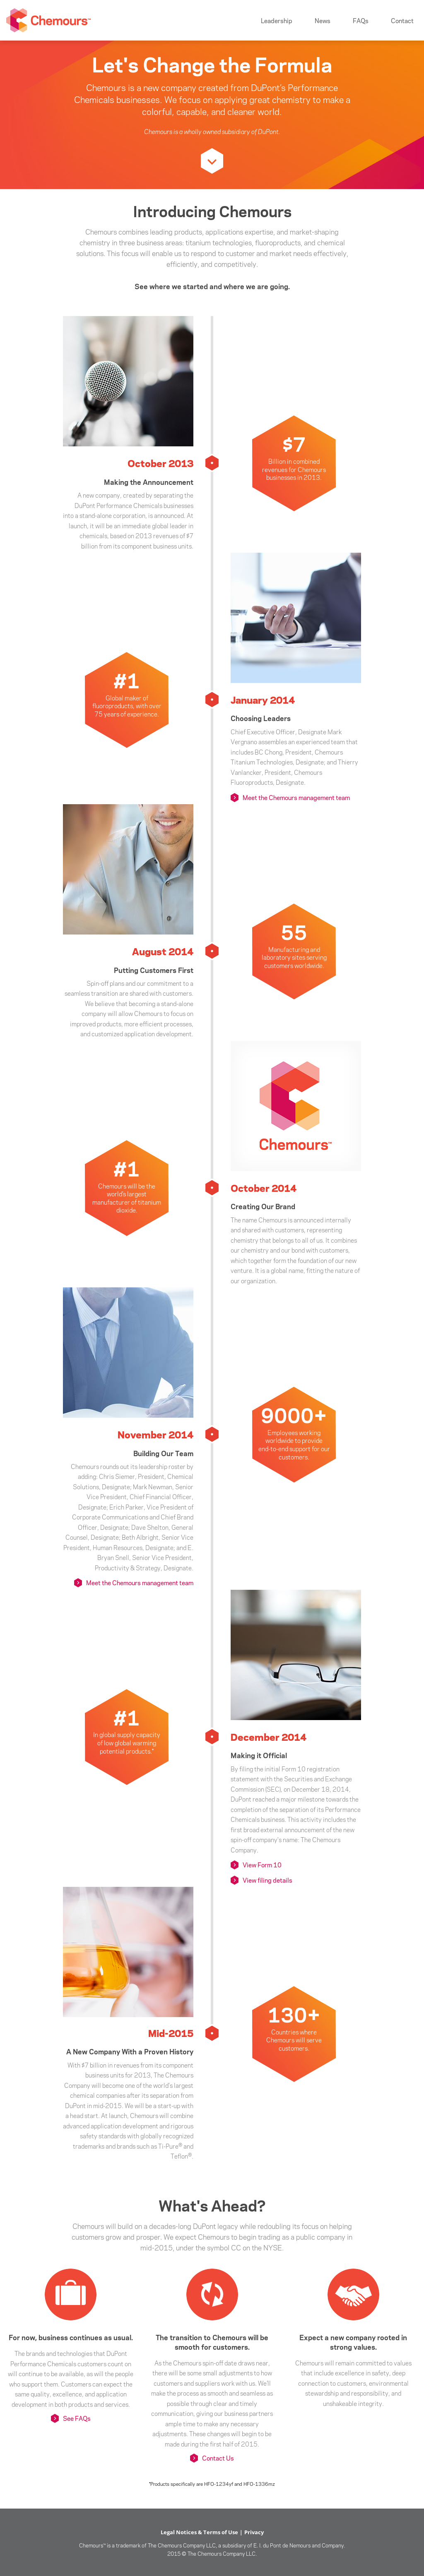 Chemours Competitors, Revenue and Employees - Owler Company